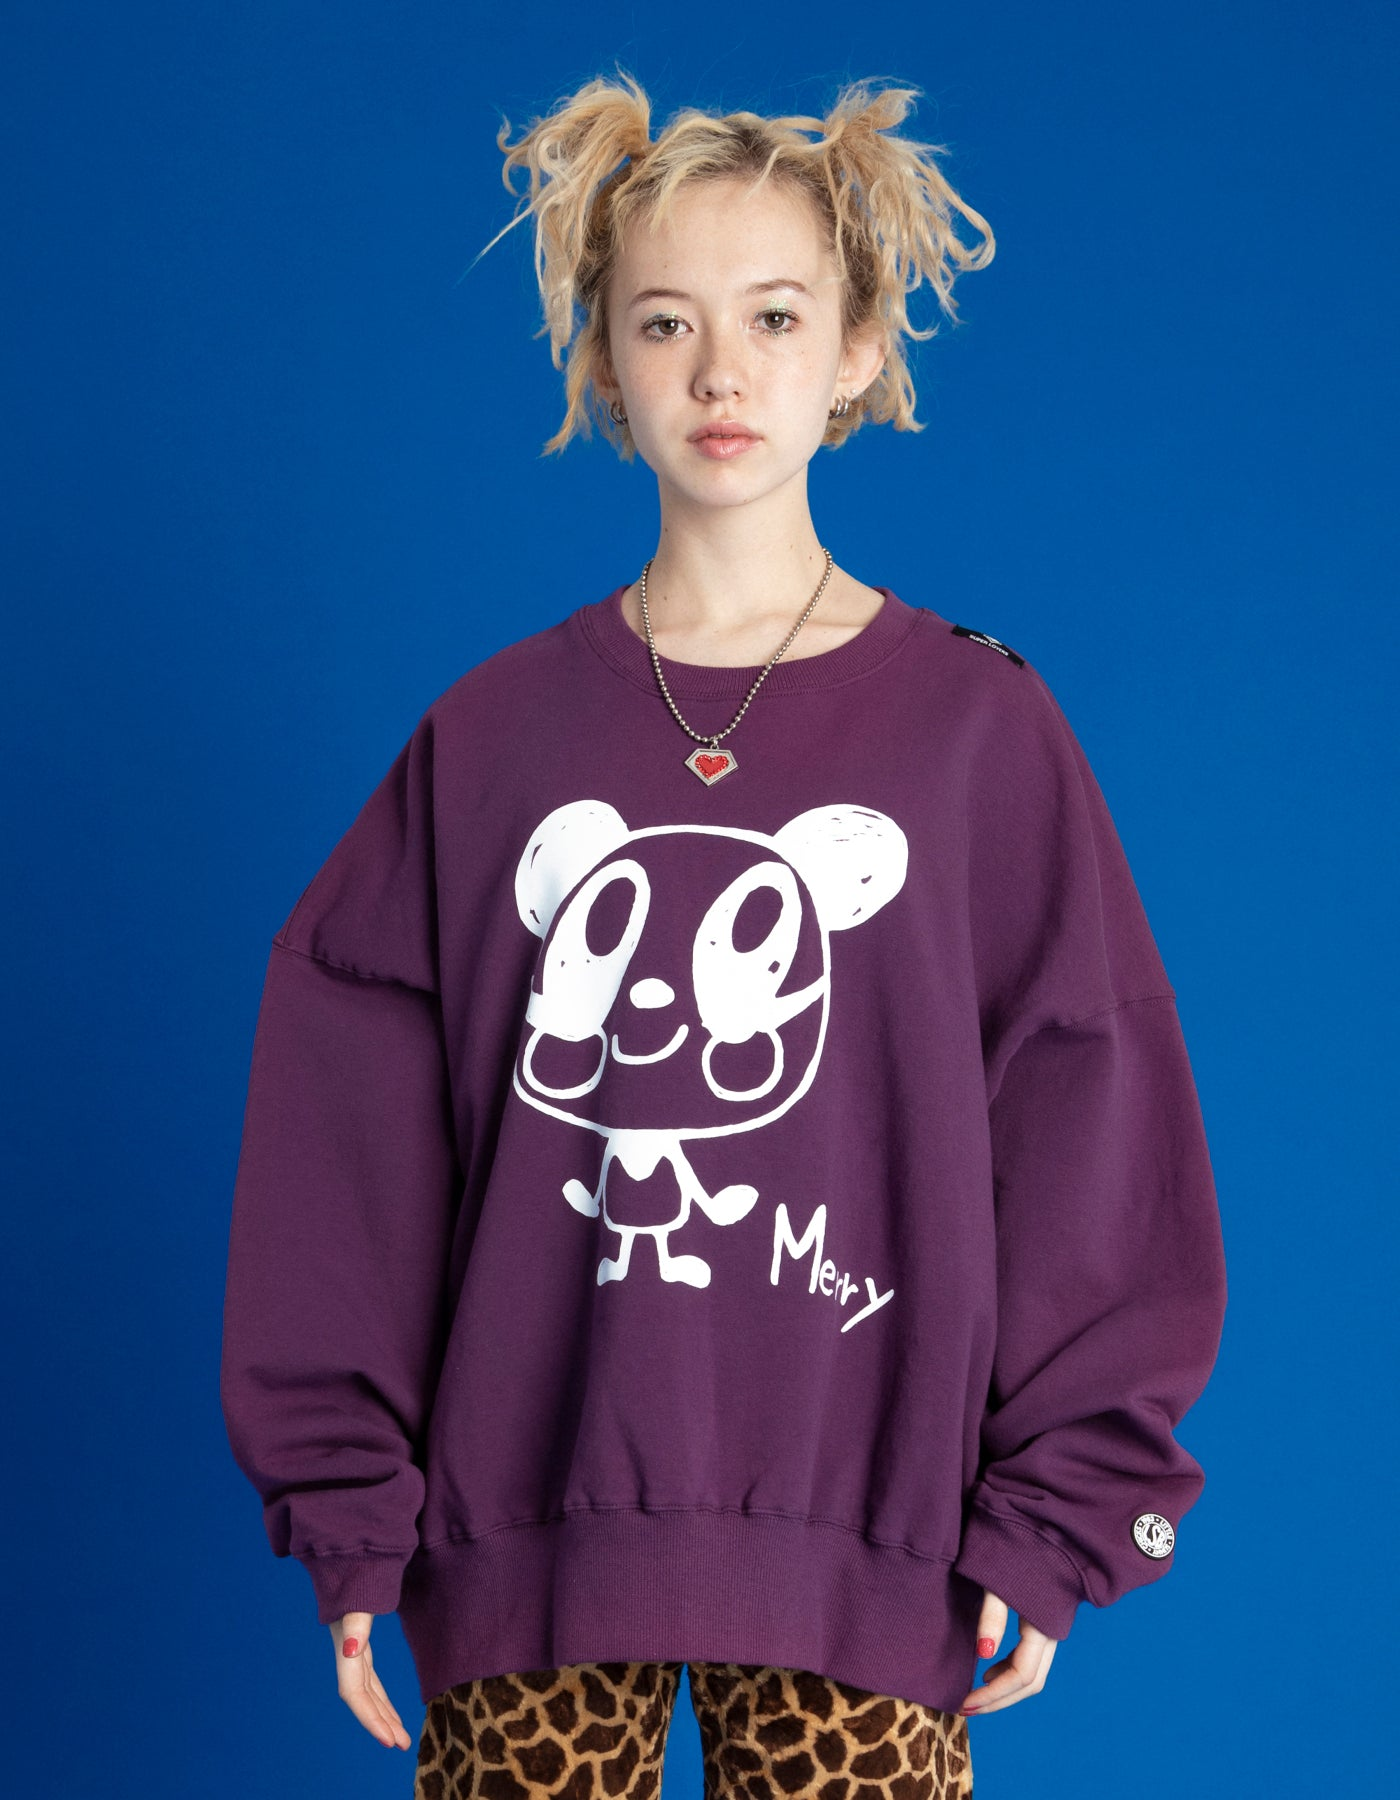 DOODLE MERRY SWEAT TOP / PURPLE